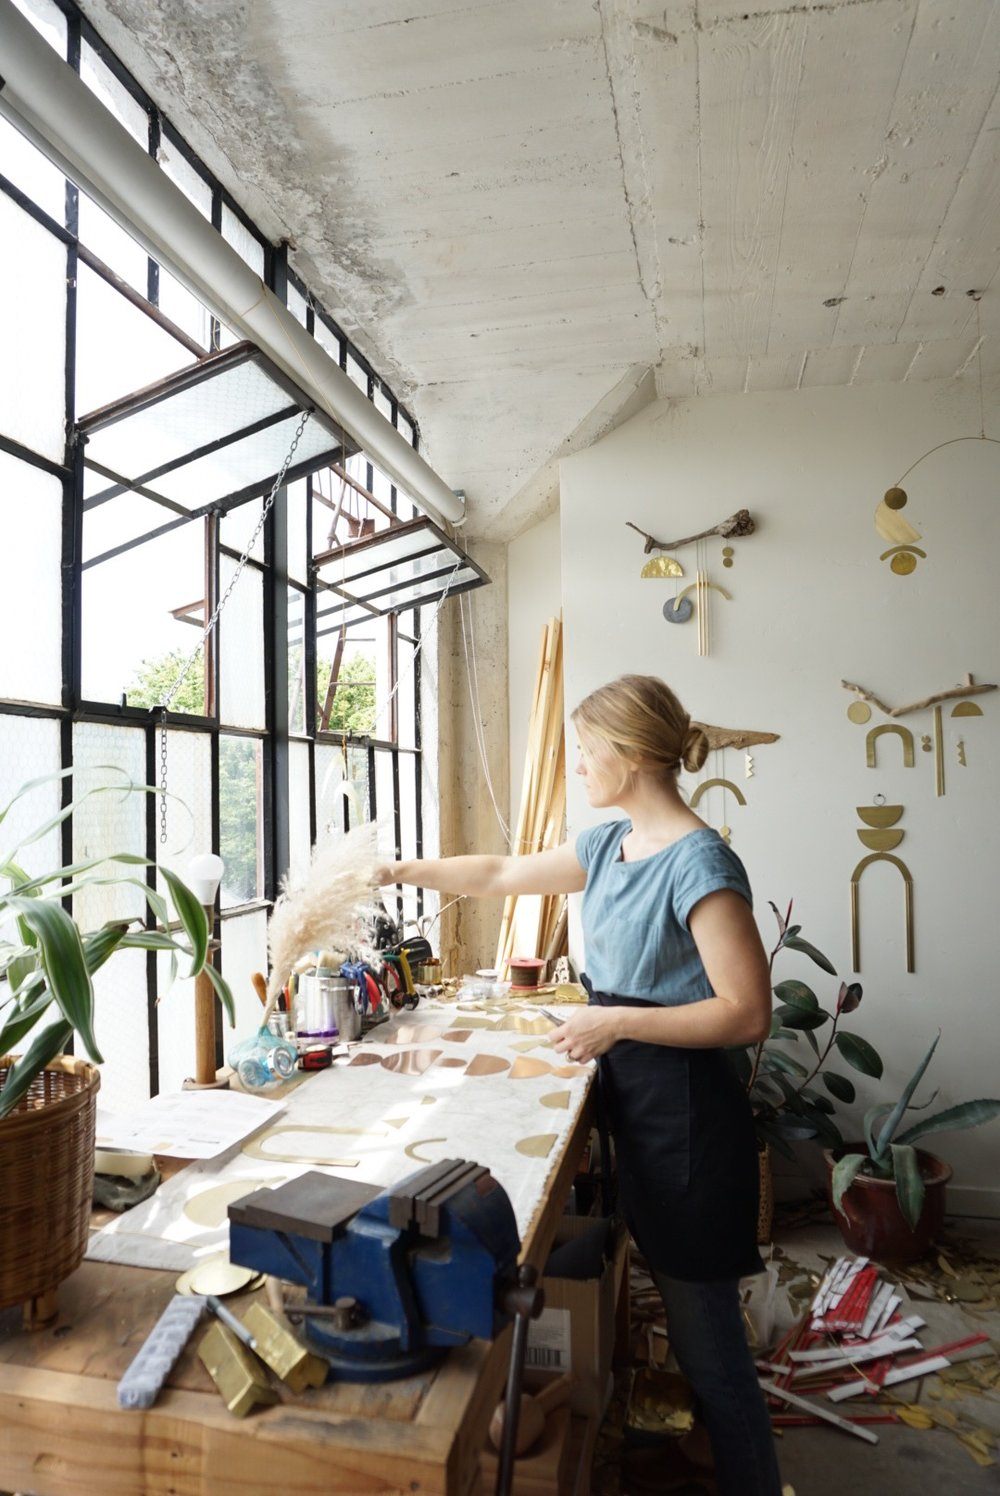 Sarah Perez working in her studio